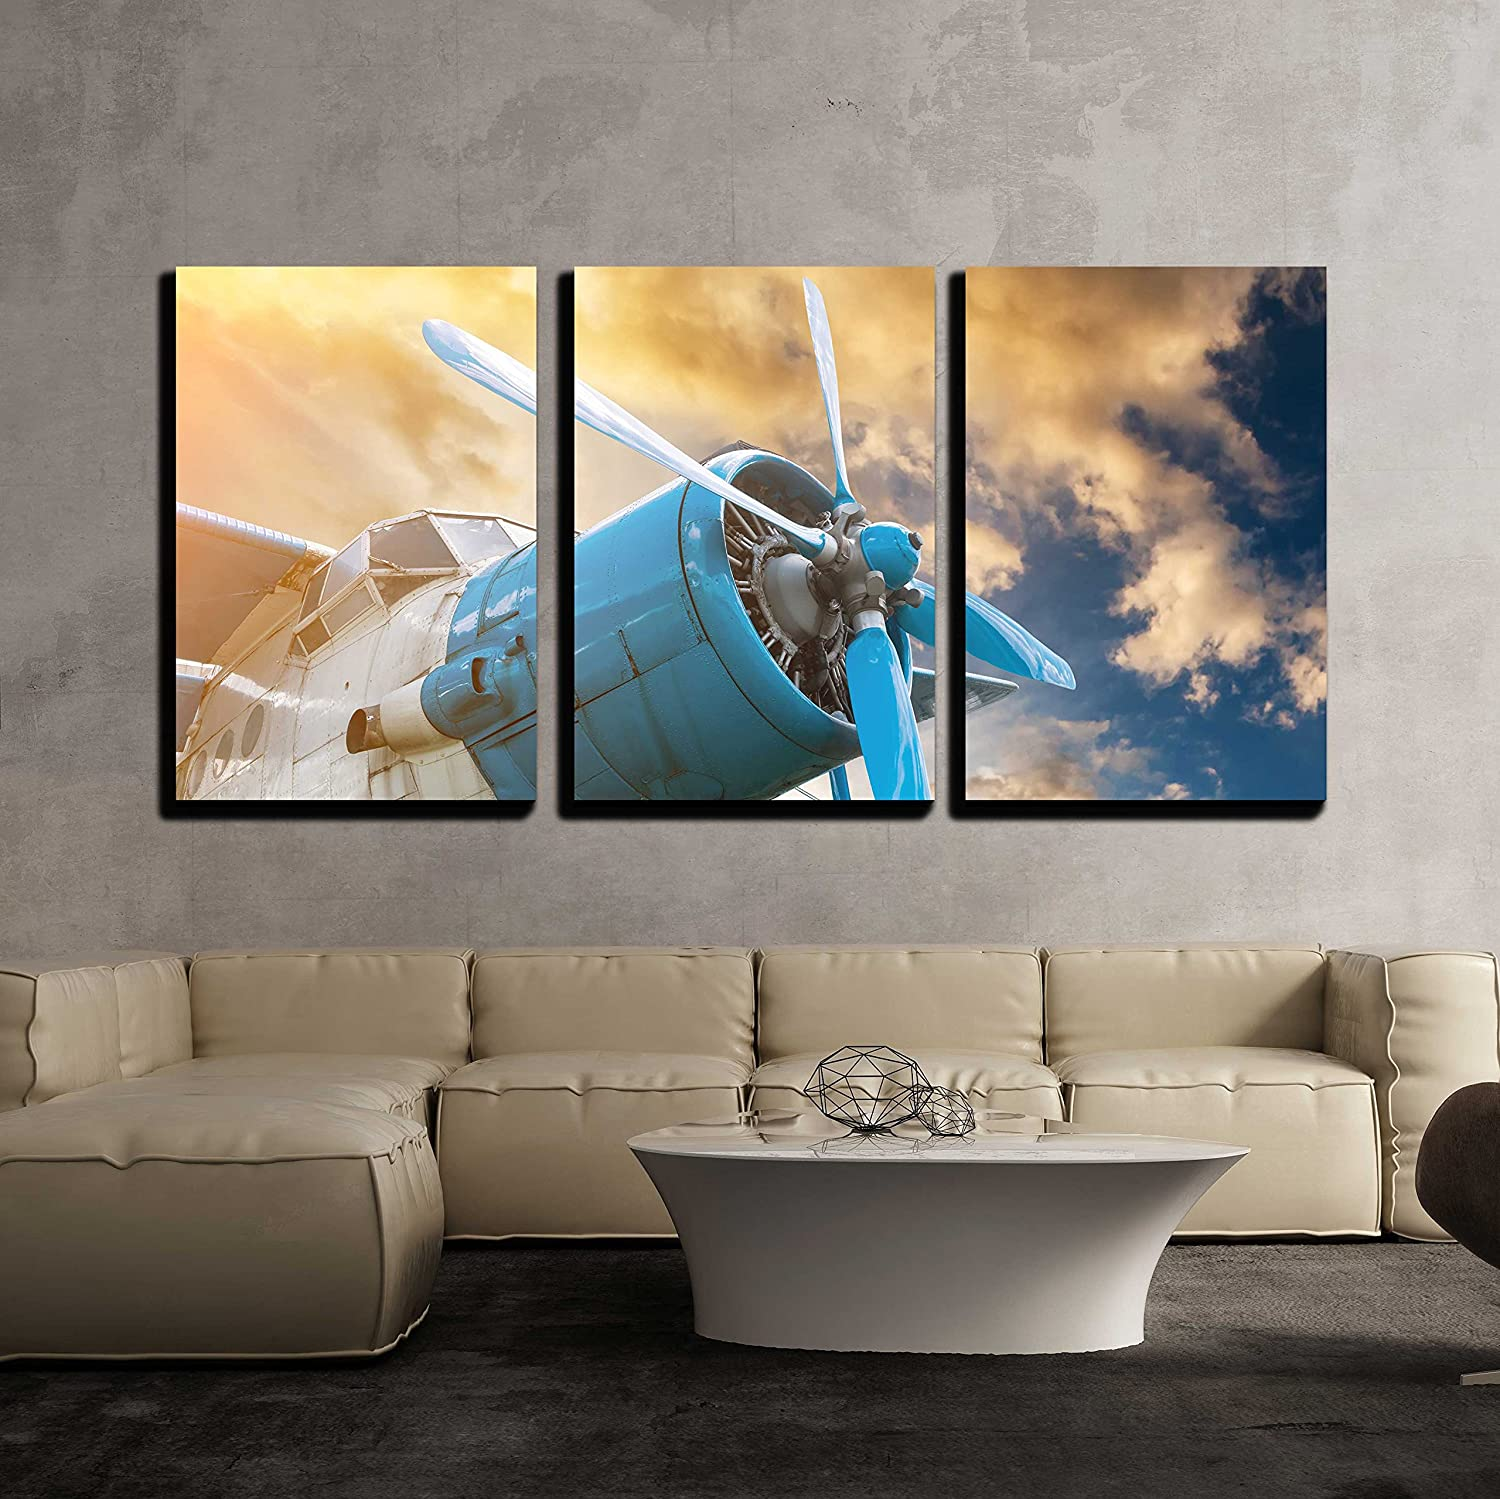 wall26 3 Piece Canvas Wall Long-awaited Art Max 70% OFF with Propeller on - Plane Beautif